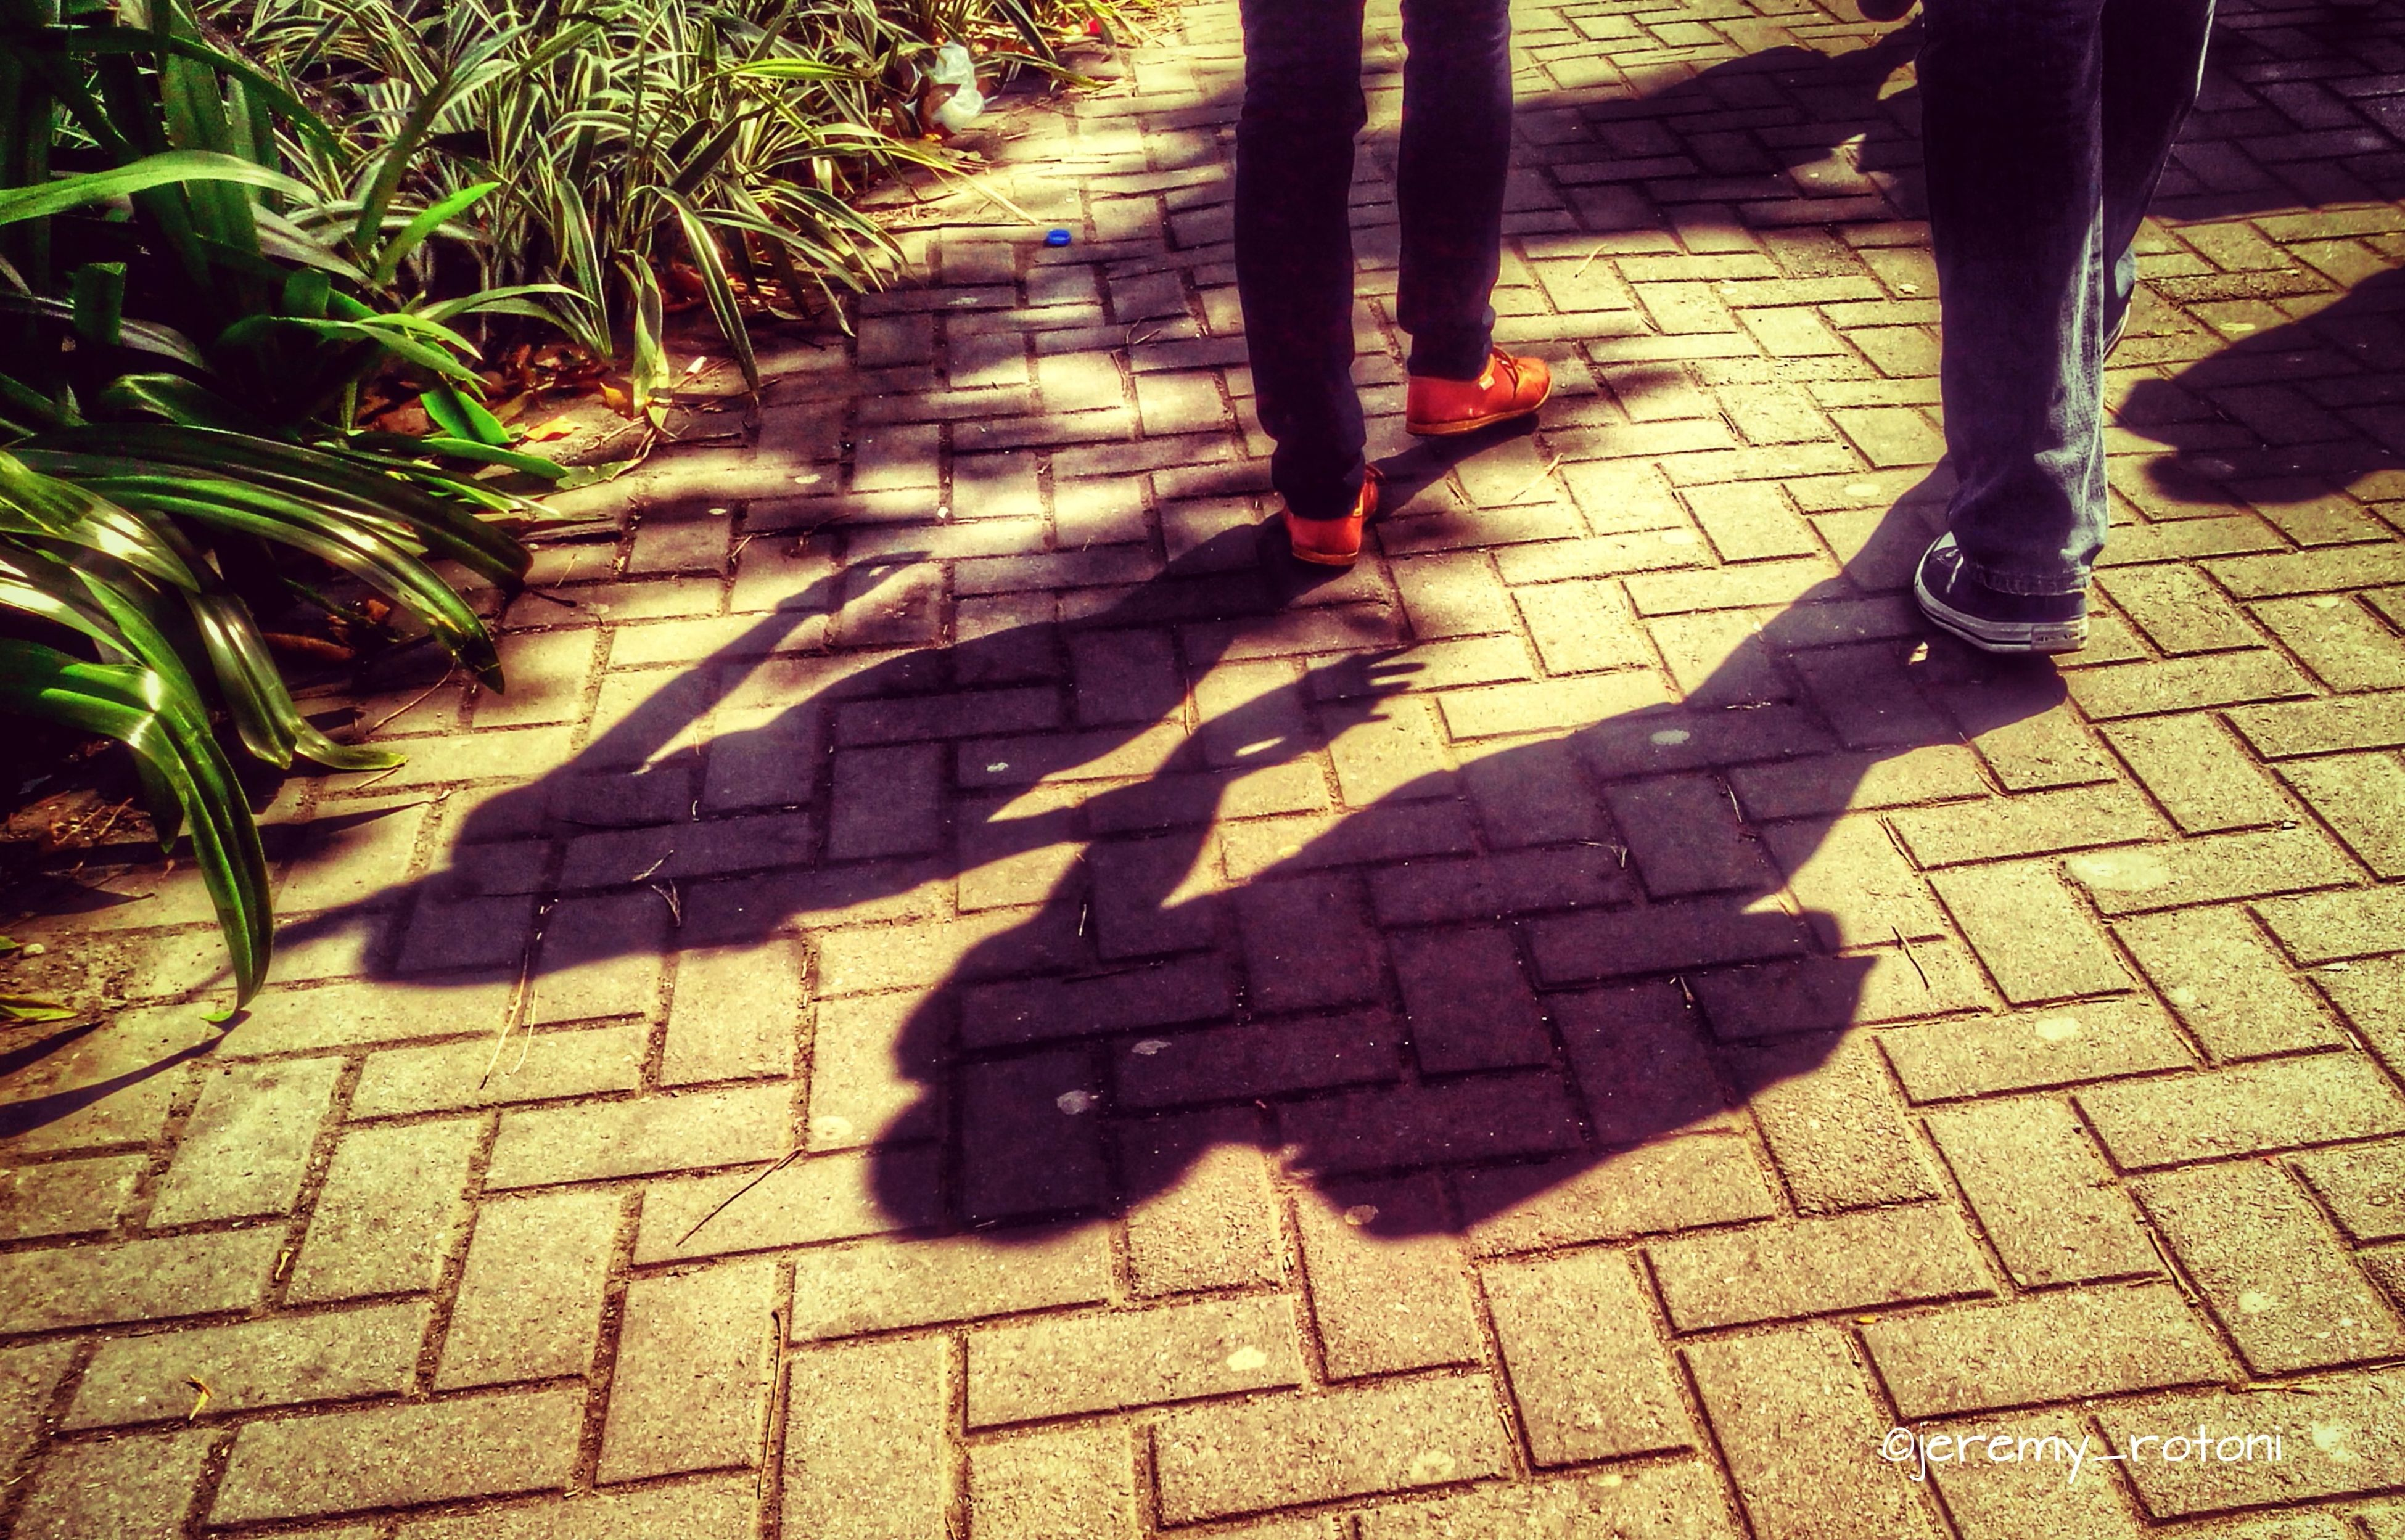 shadow, high angle view, sunlight, focus on shadow, paving stone, footpath, leaf, street, cobblestone, sidewalk, low section, outdoors, day, shoe, autumn, park - man made space, pavement, standing